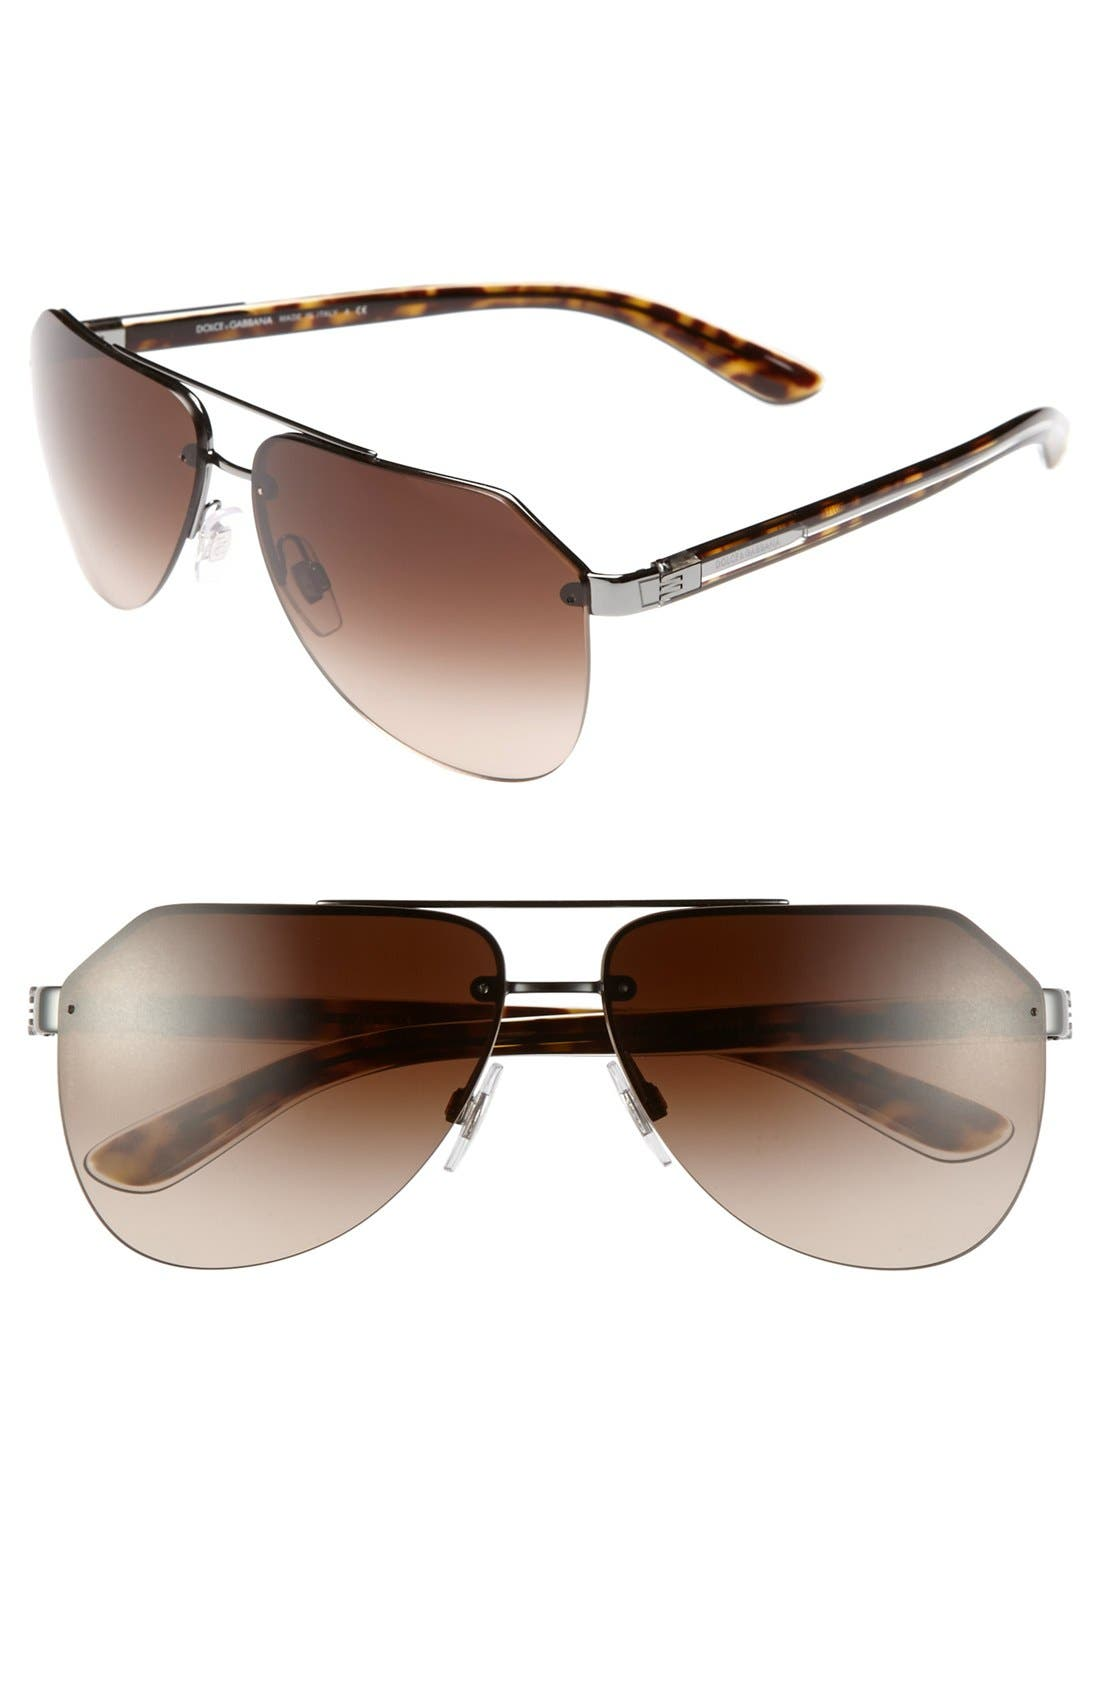 Main Image - Dolce&Gabbana 61mm Polarized Rimless Aviator Sunglasses